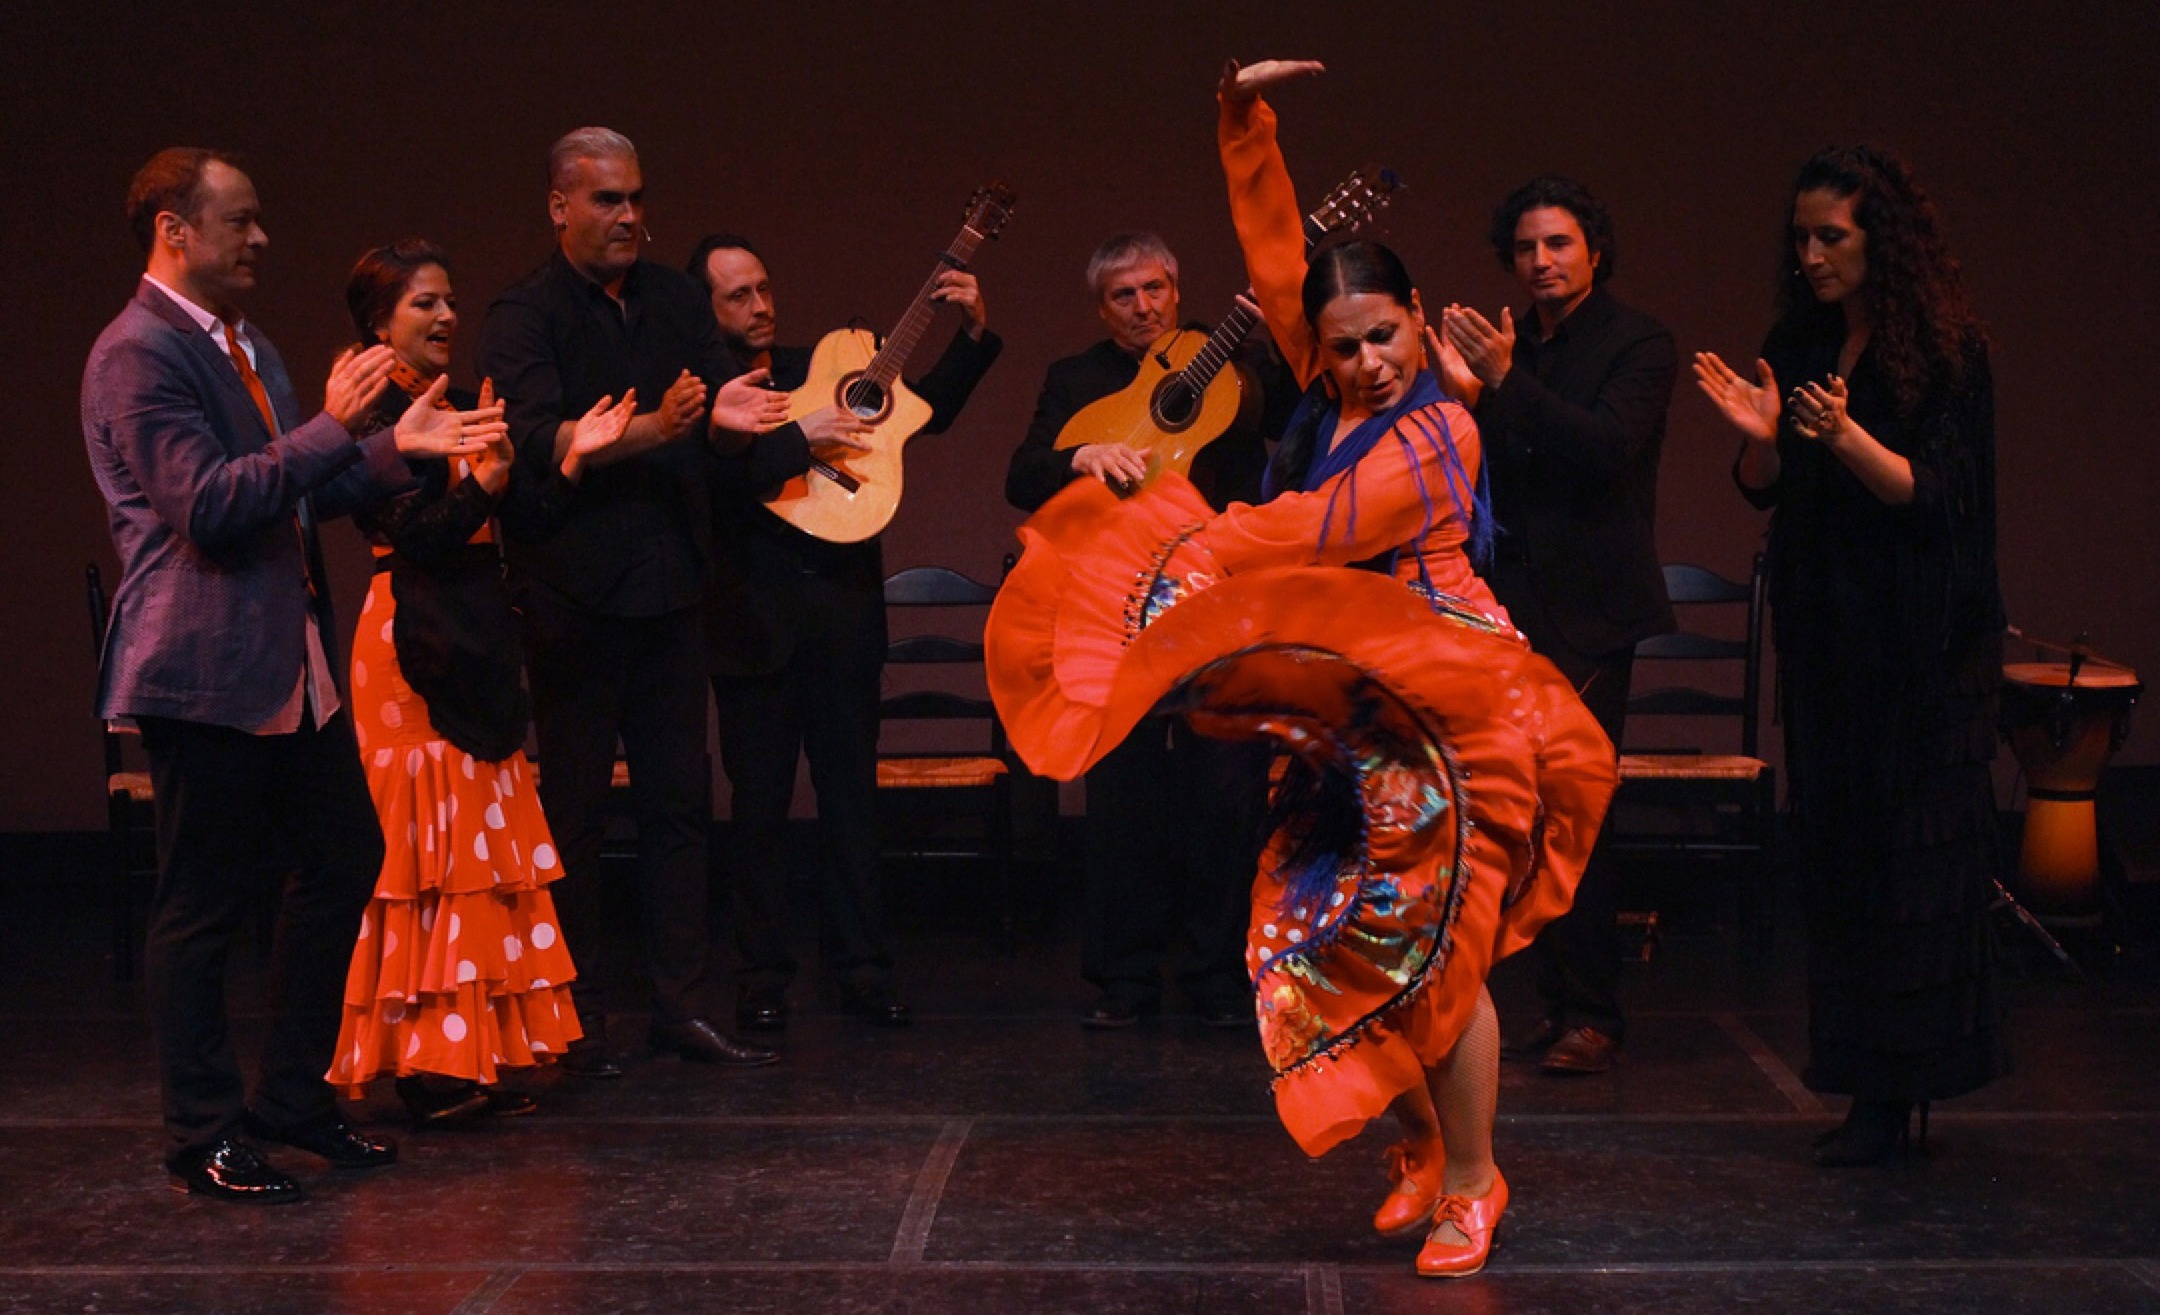 Tablao%20Flamenco%20Promo%201_edited.jpg